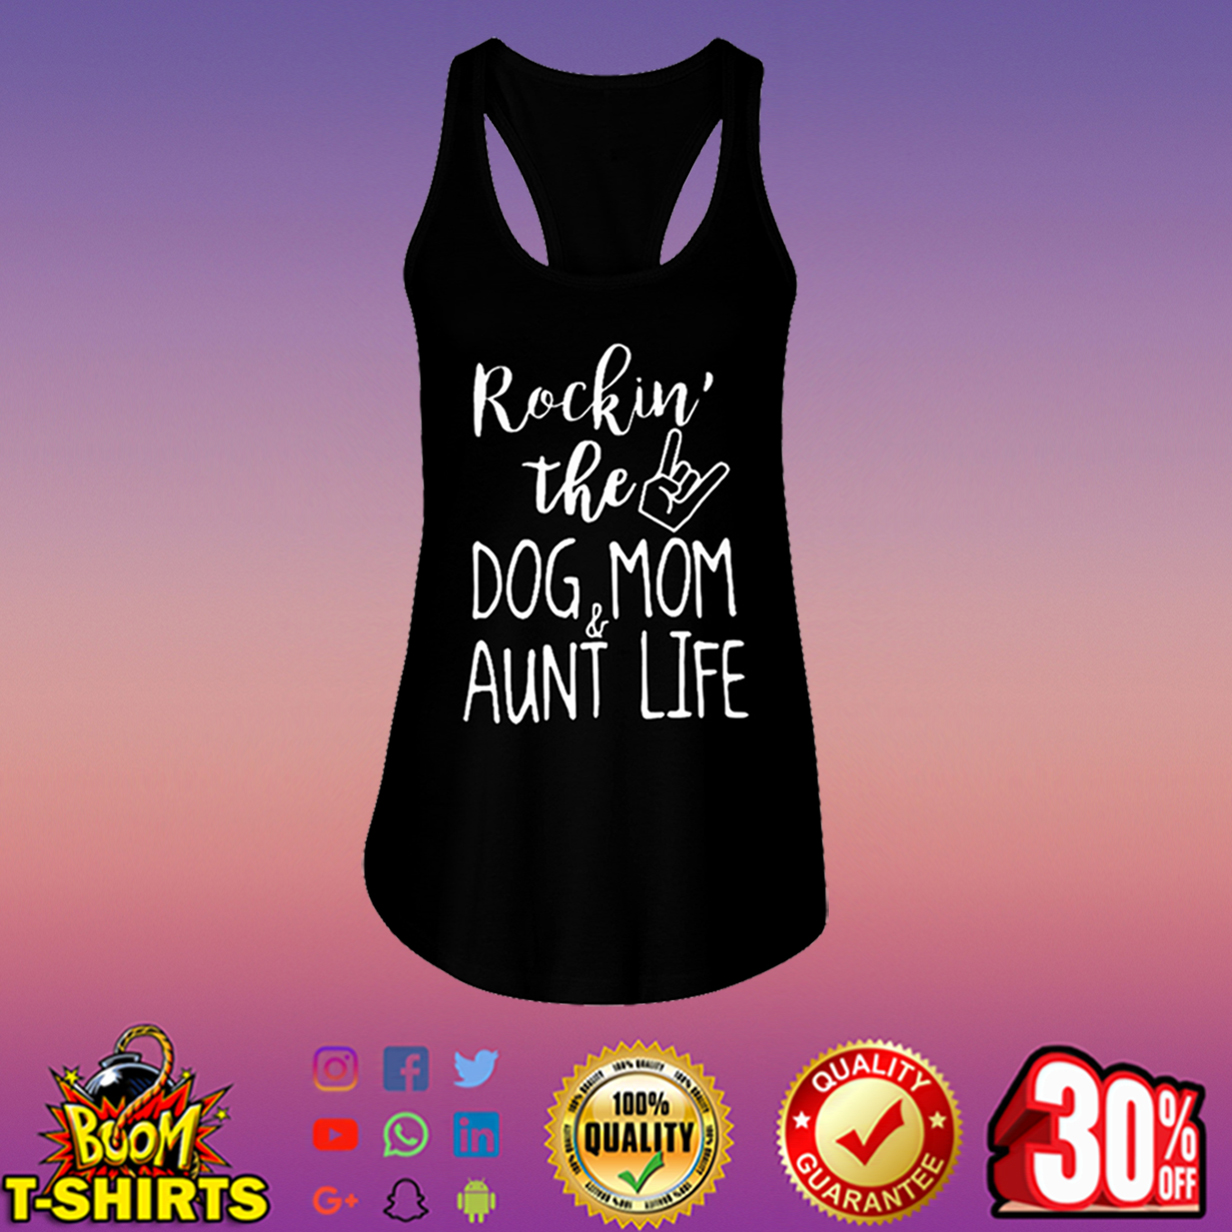 Rockin' the dog mom and aunt life flowy tank